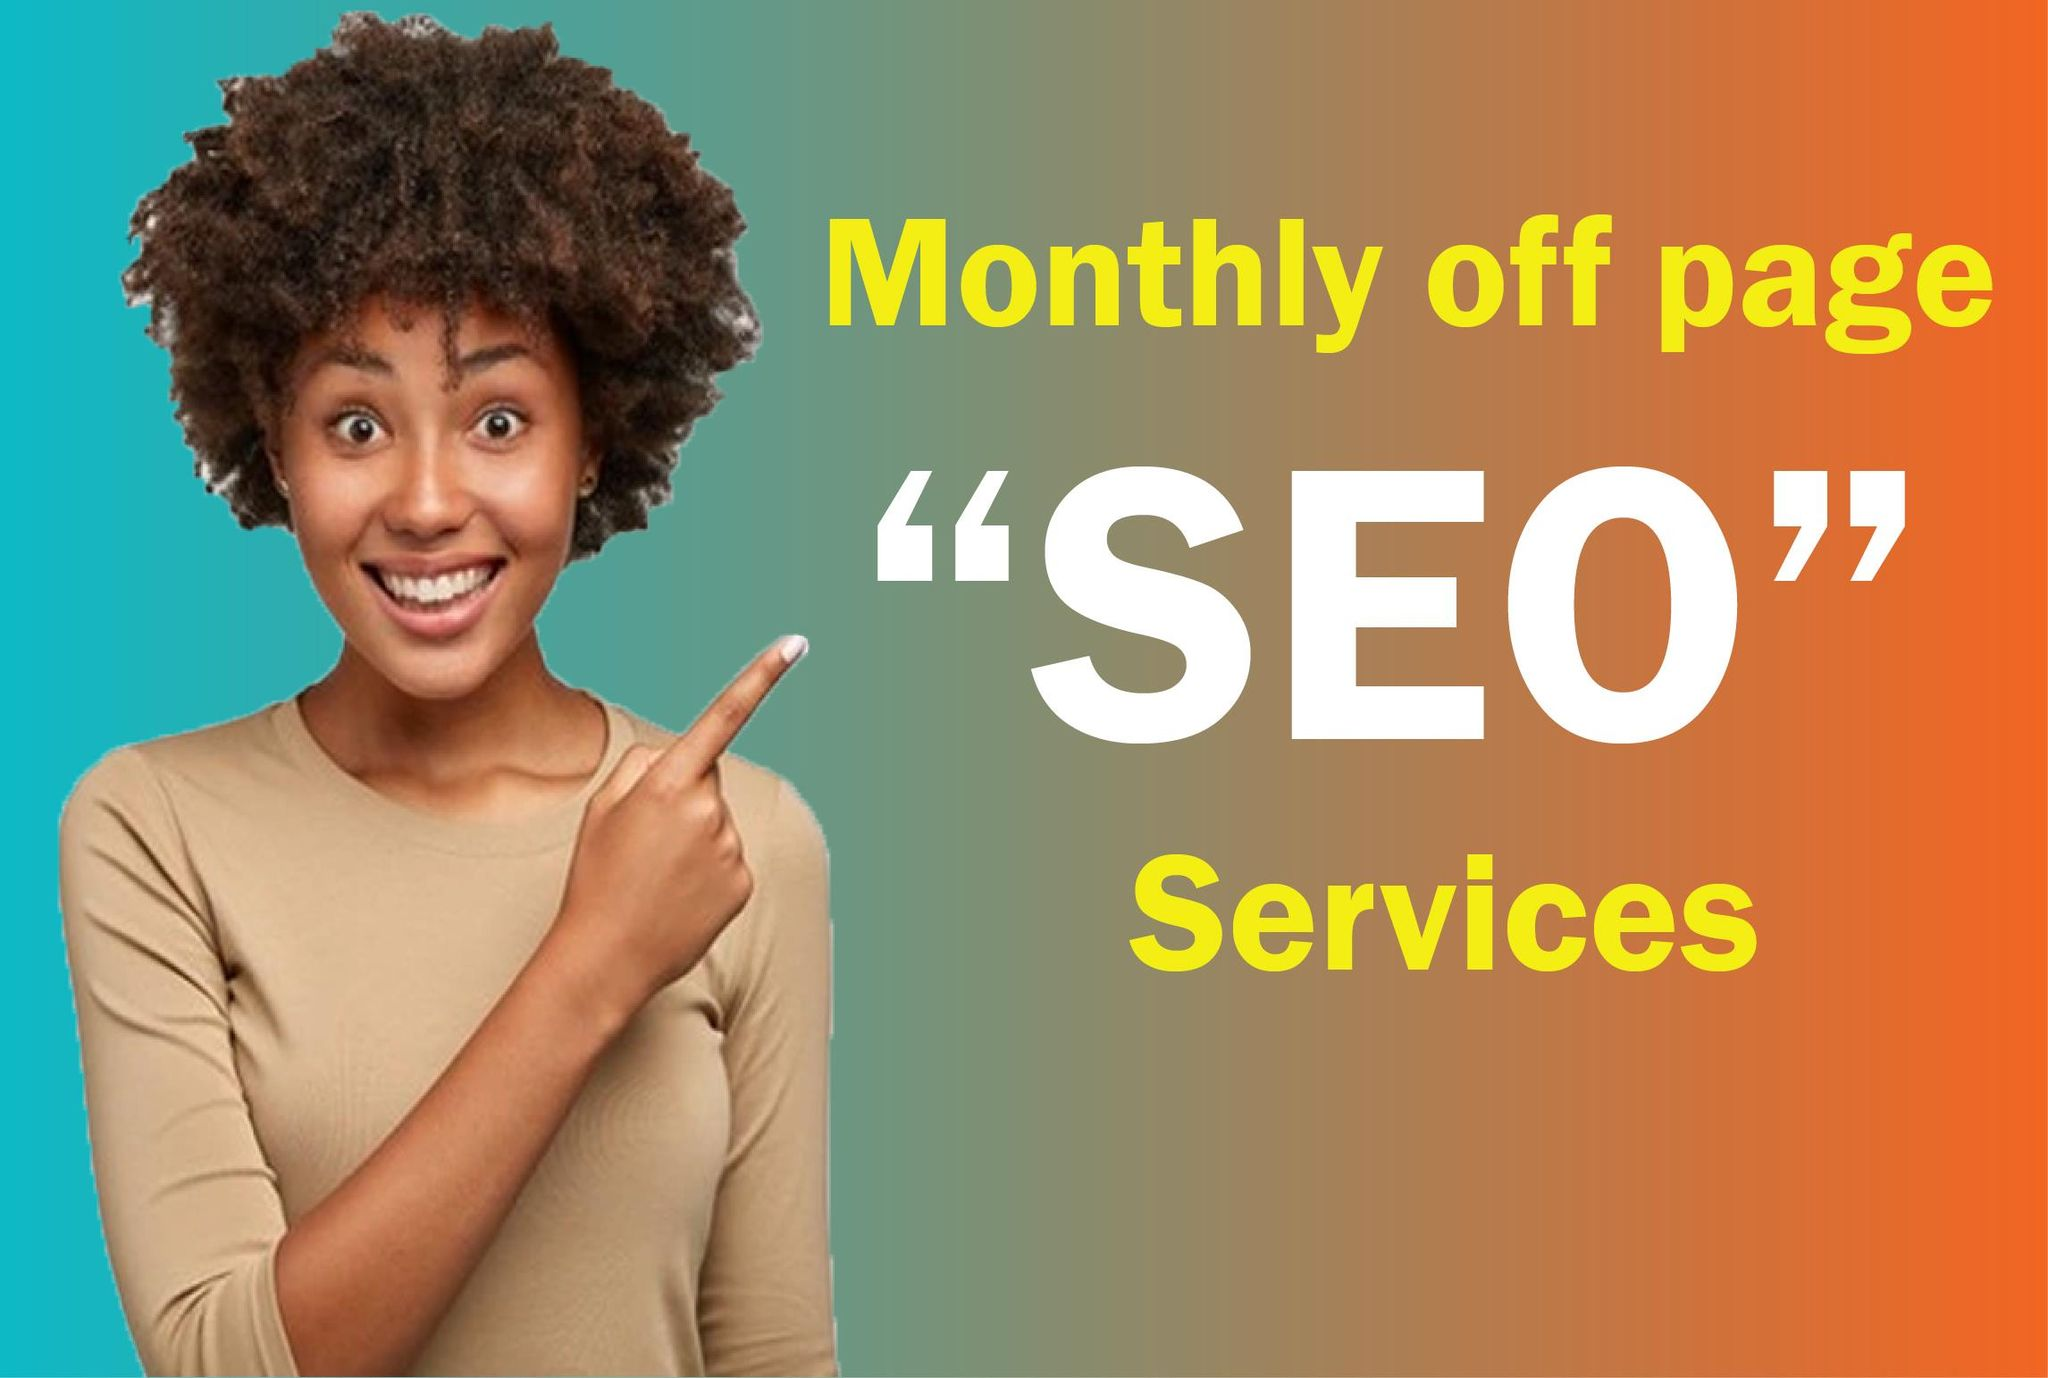 I will do off page monthly seo for google ranking